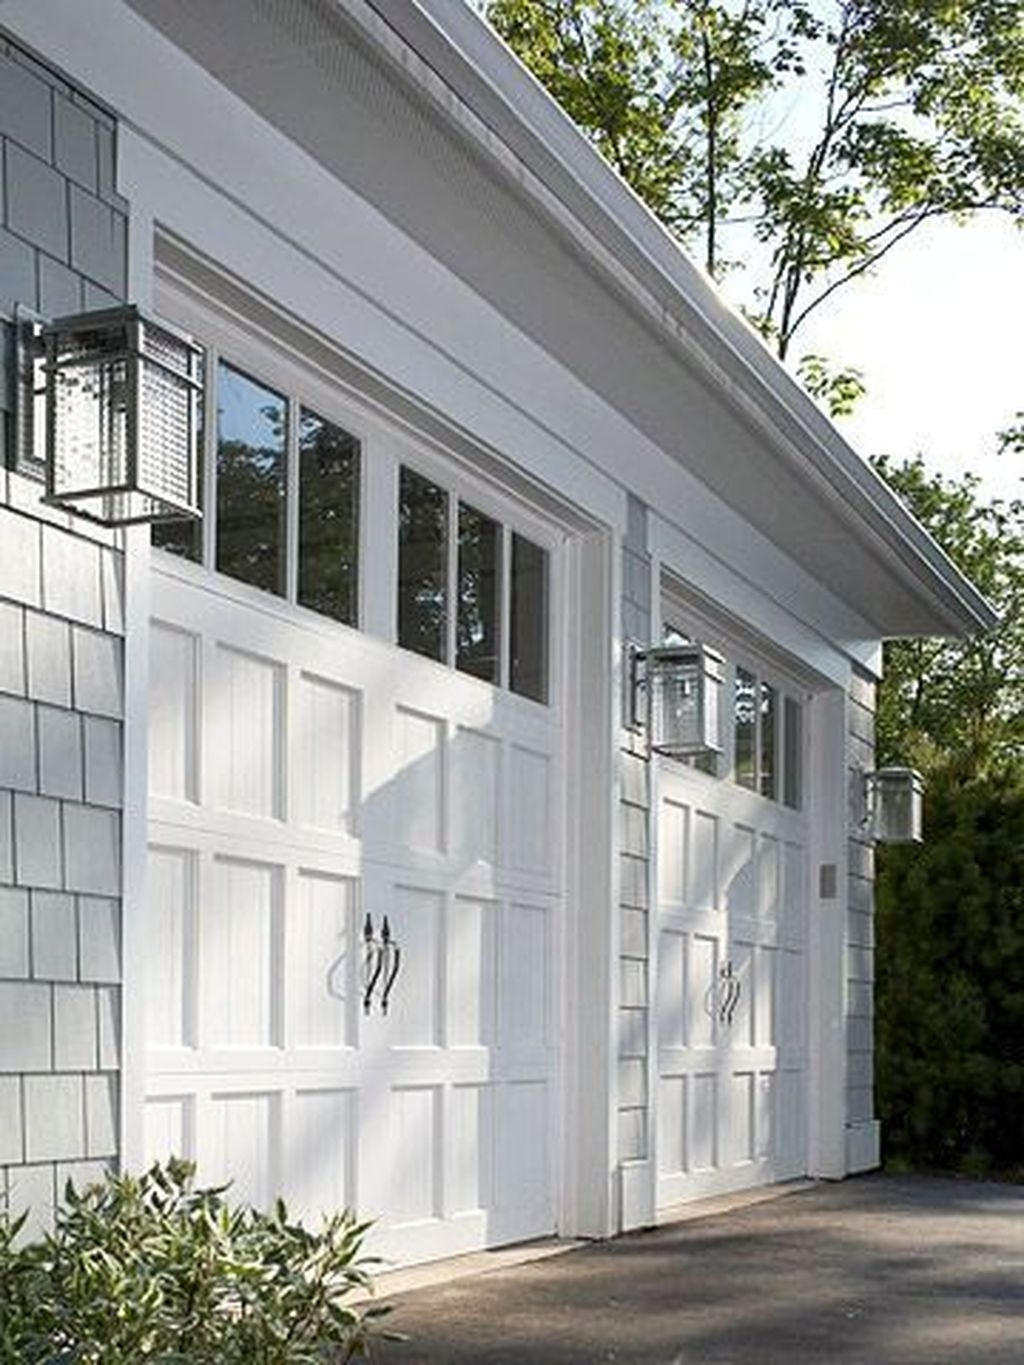 Cute Home Garage Design Ideas For Your Minimalist Home33